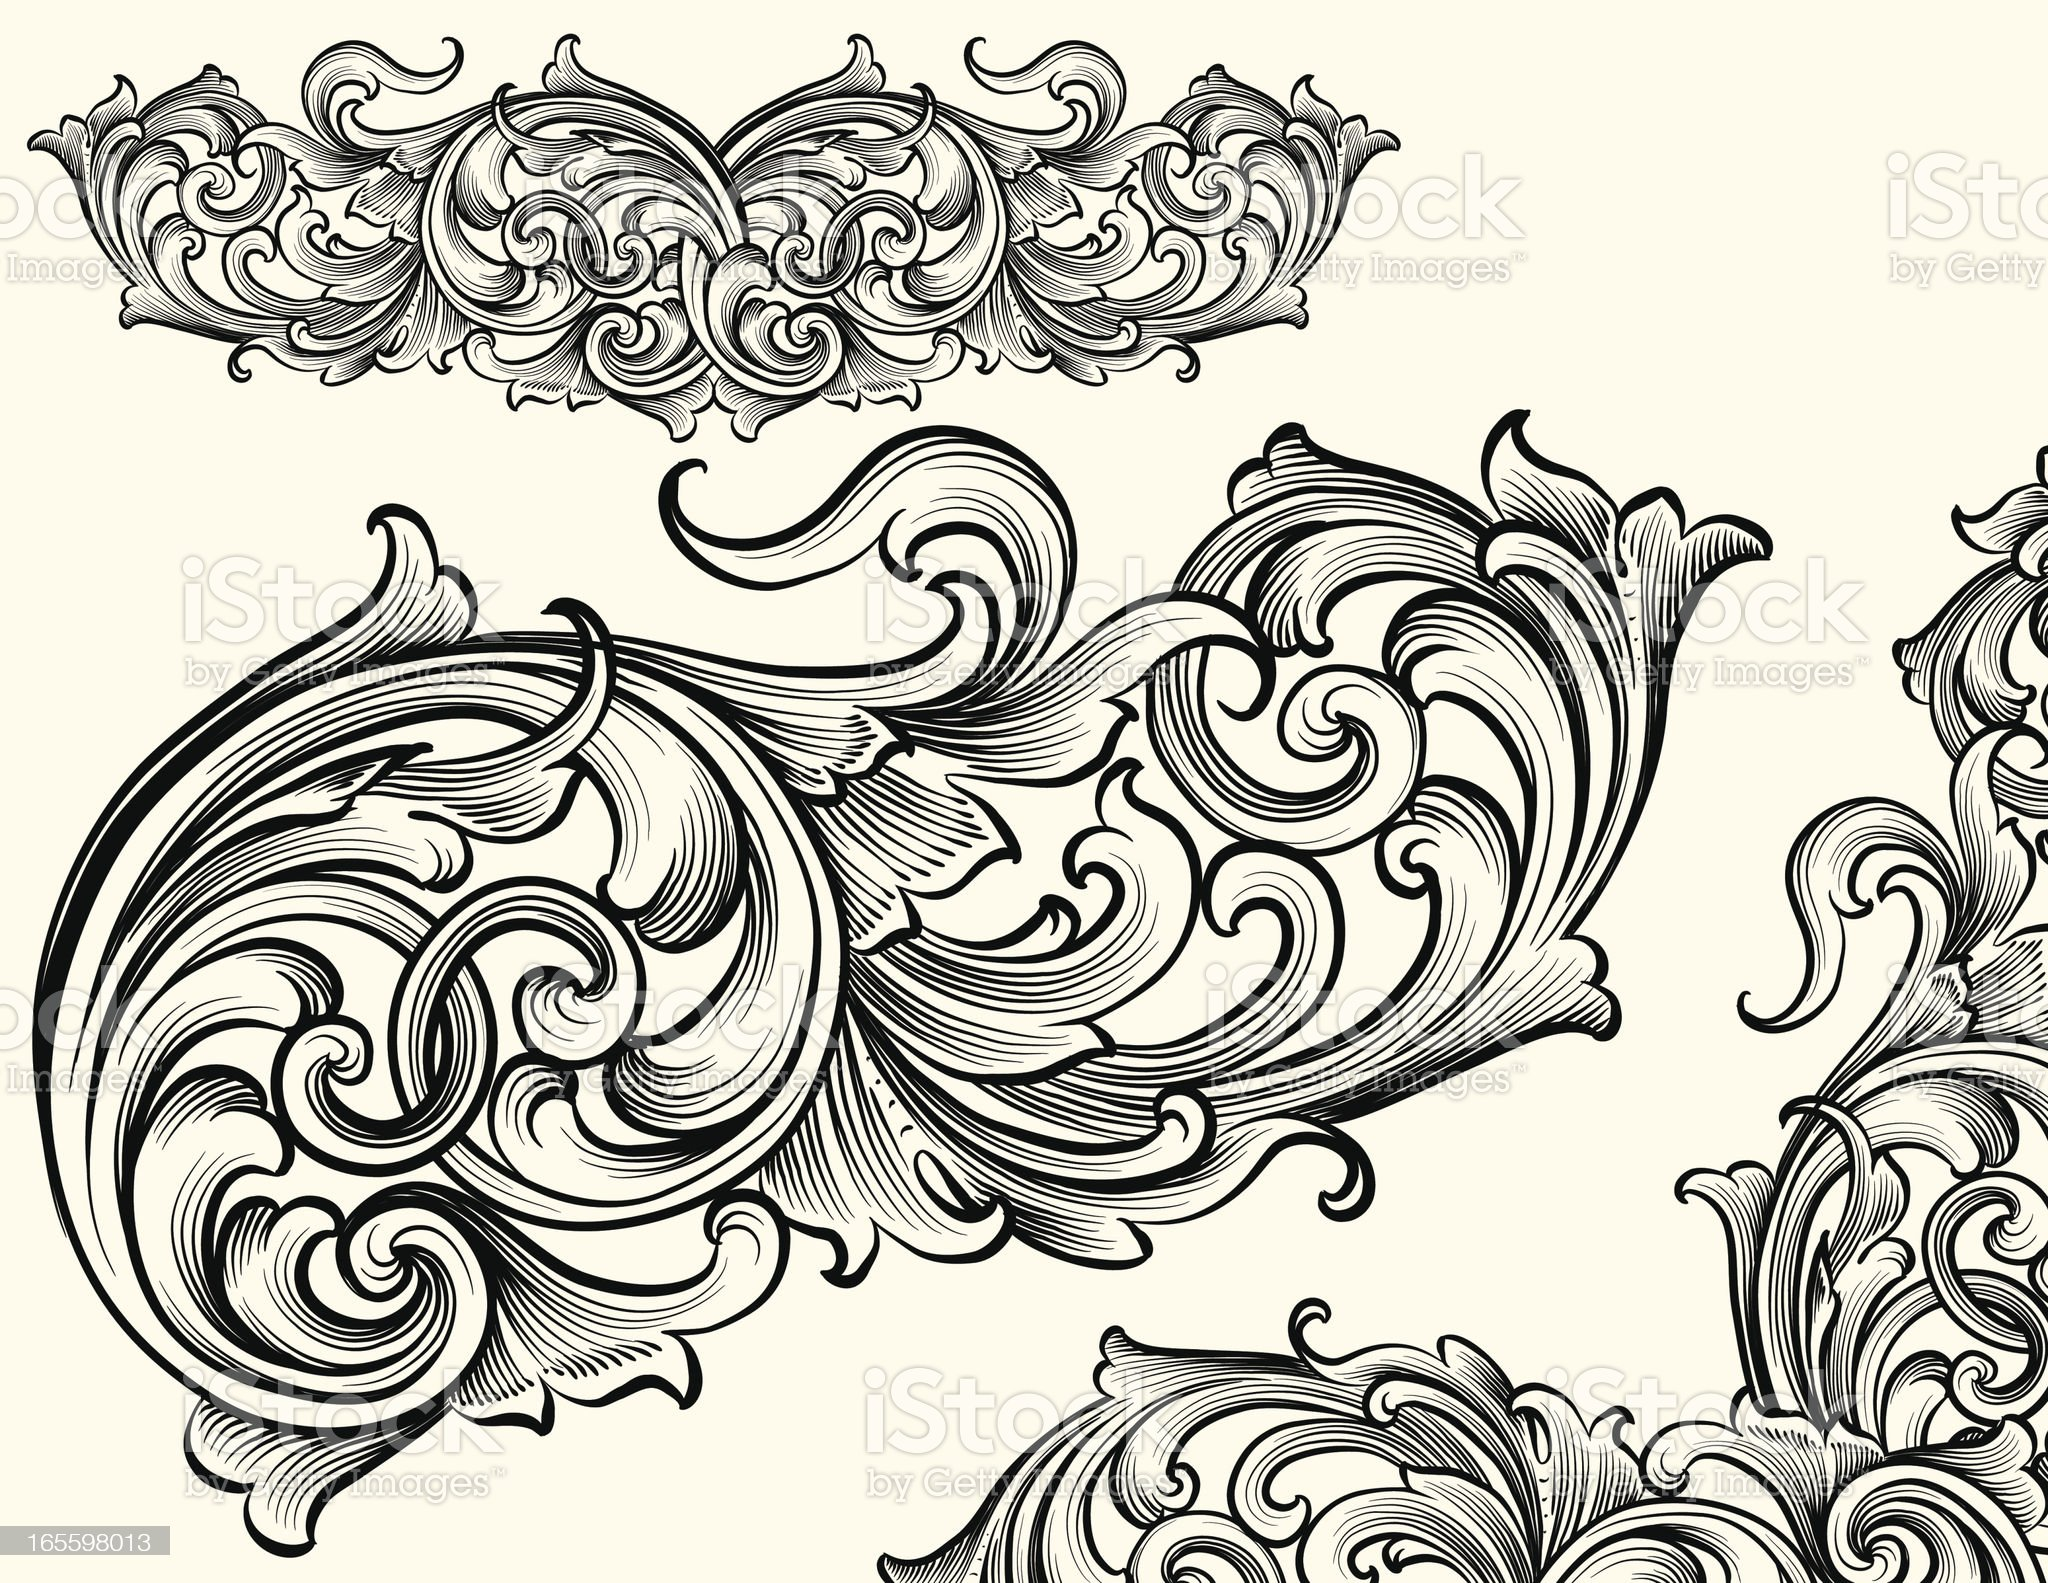 Intertwining Detailed Scroll royalty-free stock vector art